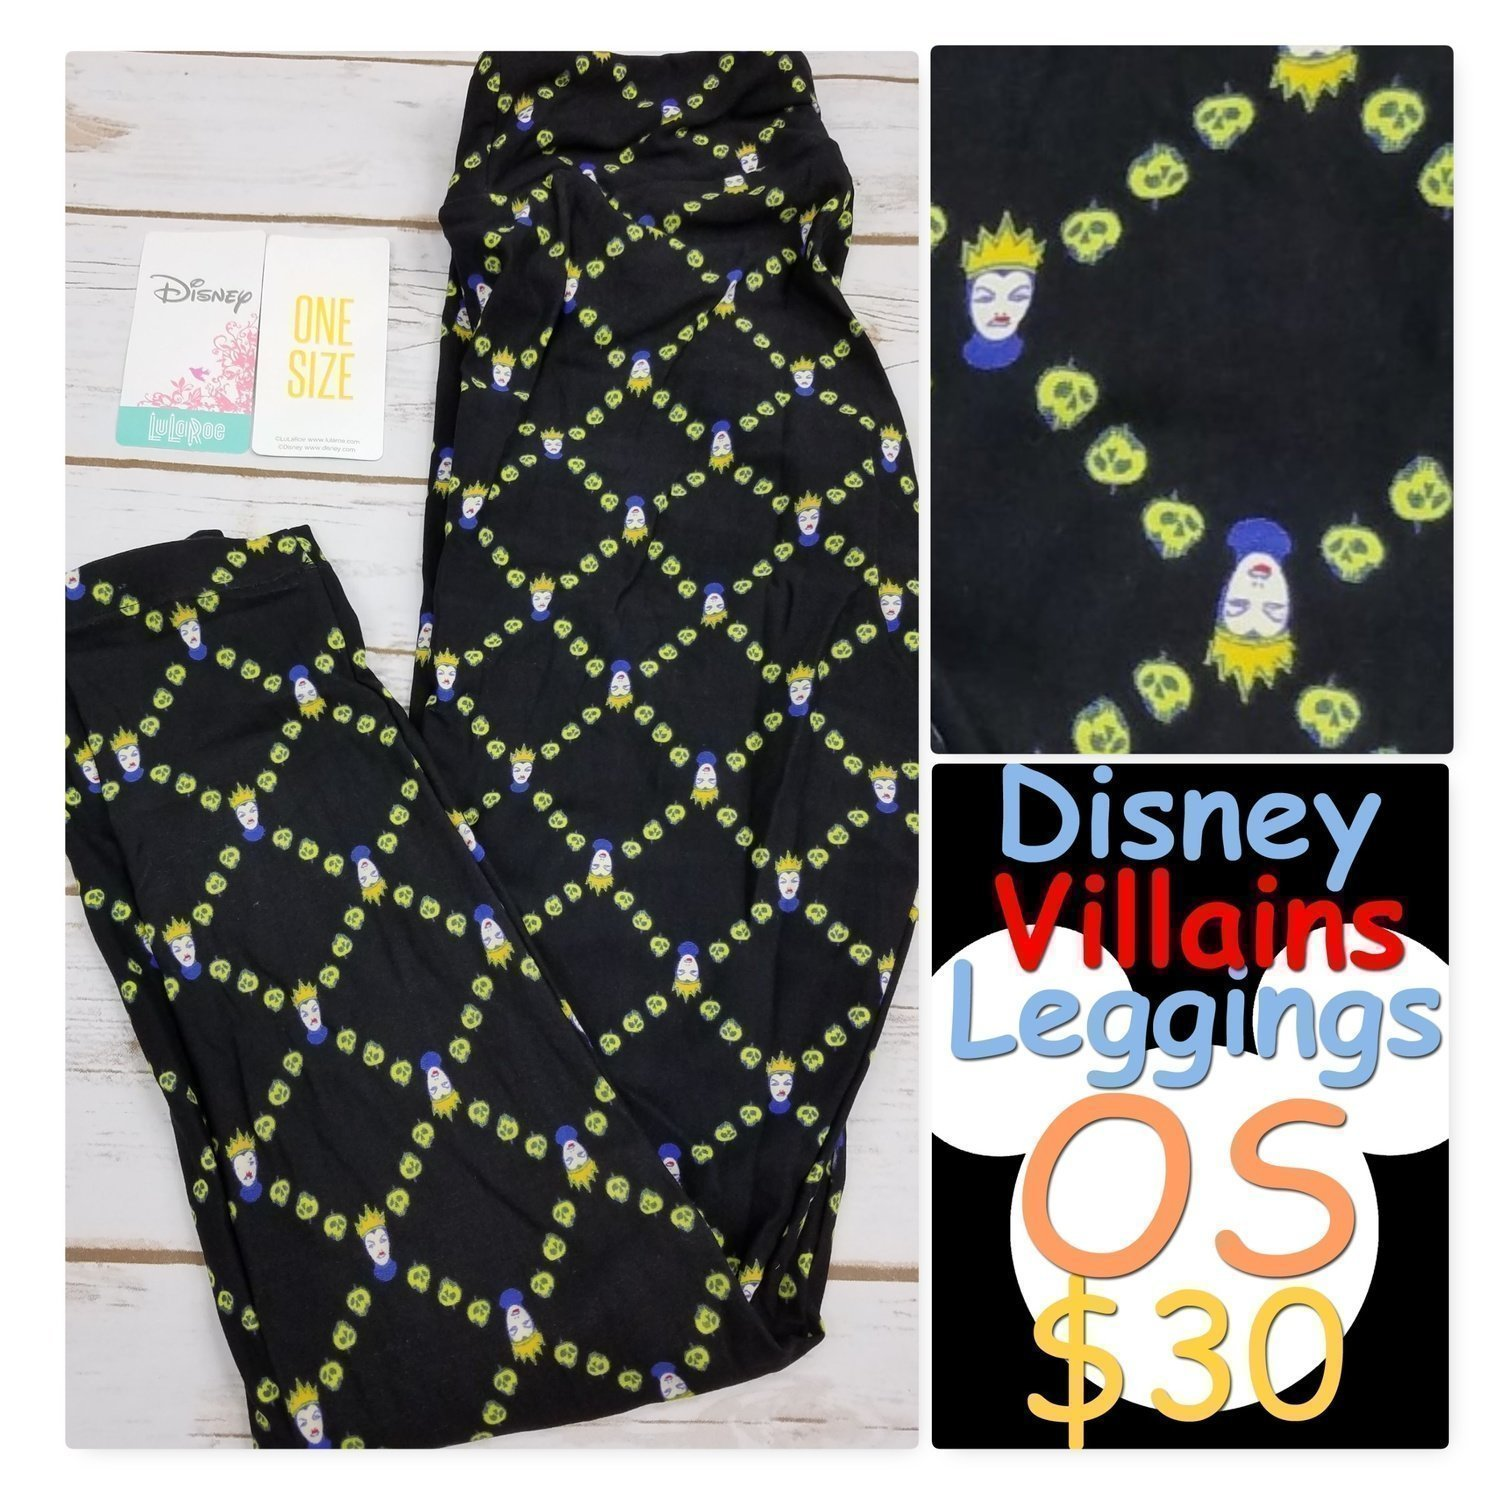 One Size (OS) 2018 Disney Villains LuLaRoe Leggings